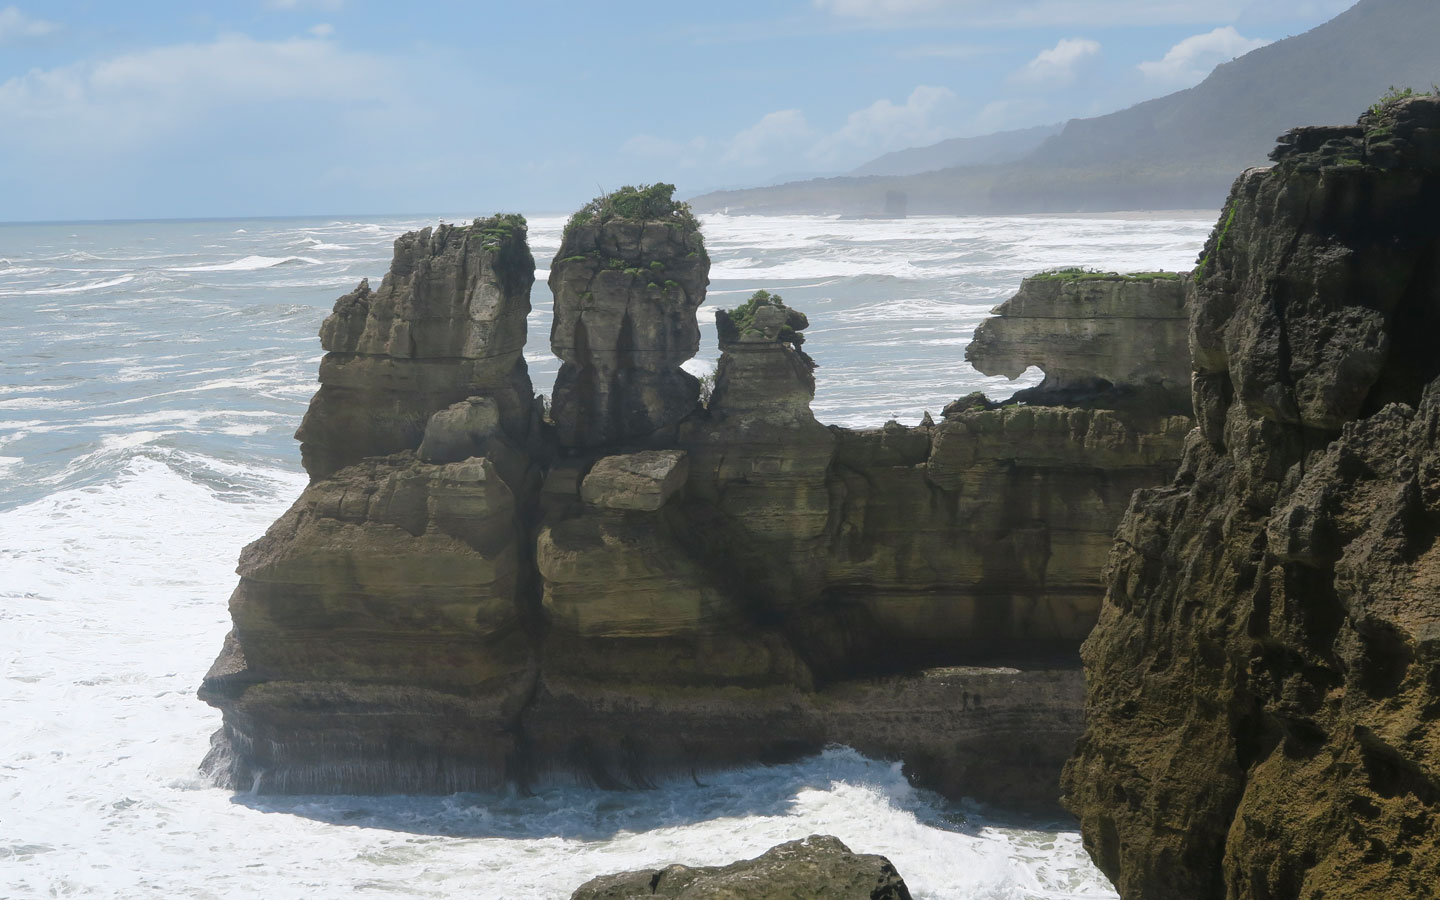 Pancake rocks in Punakaiki in New Zealand